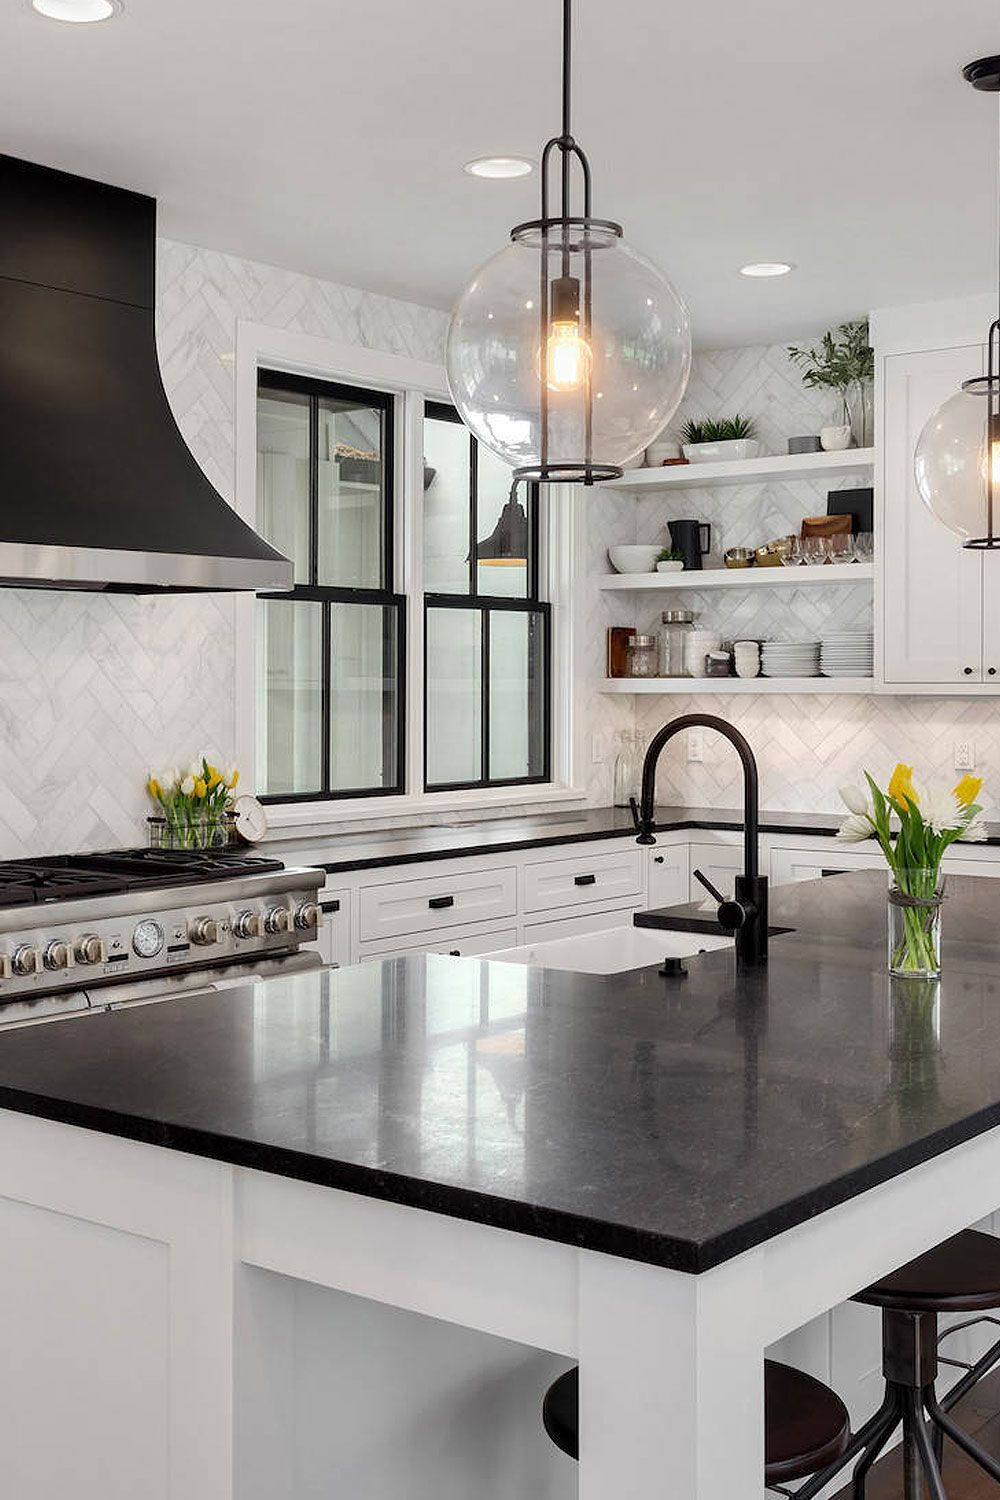 50 Black Countertop Backsplash Ideas Tile Designs Tips Advice In 2020 White Modern Kitchen Home Decor Kitchen Black Kitchen Countertops